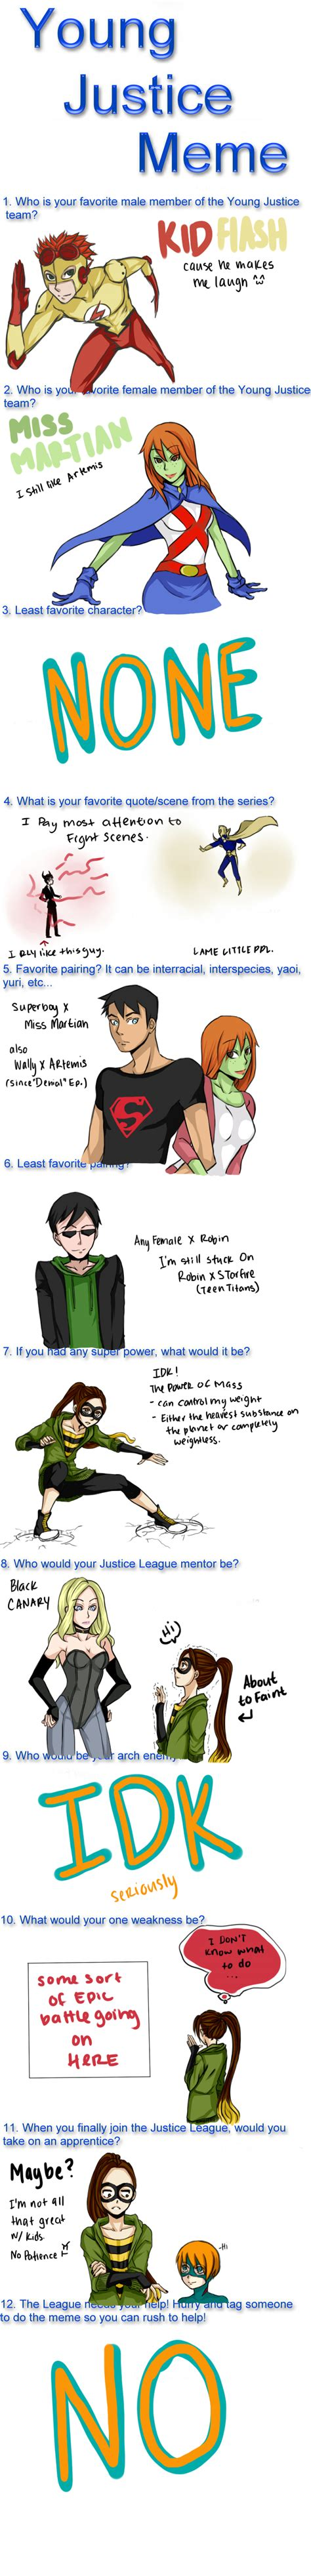 Young Justice Memes - young justice meme by deathatsunrise on deviantart